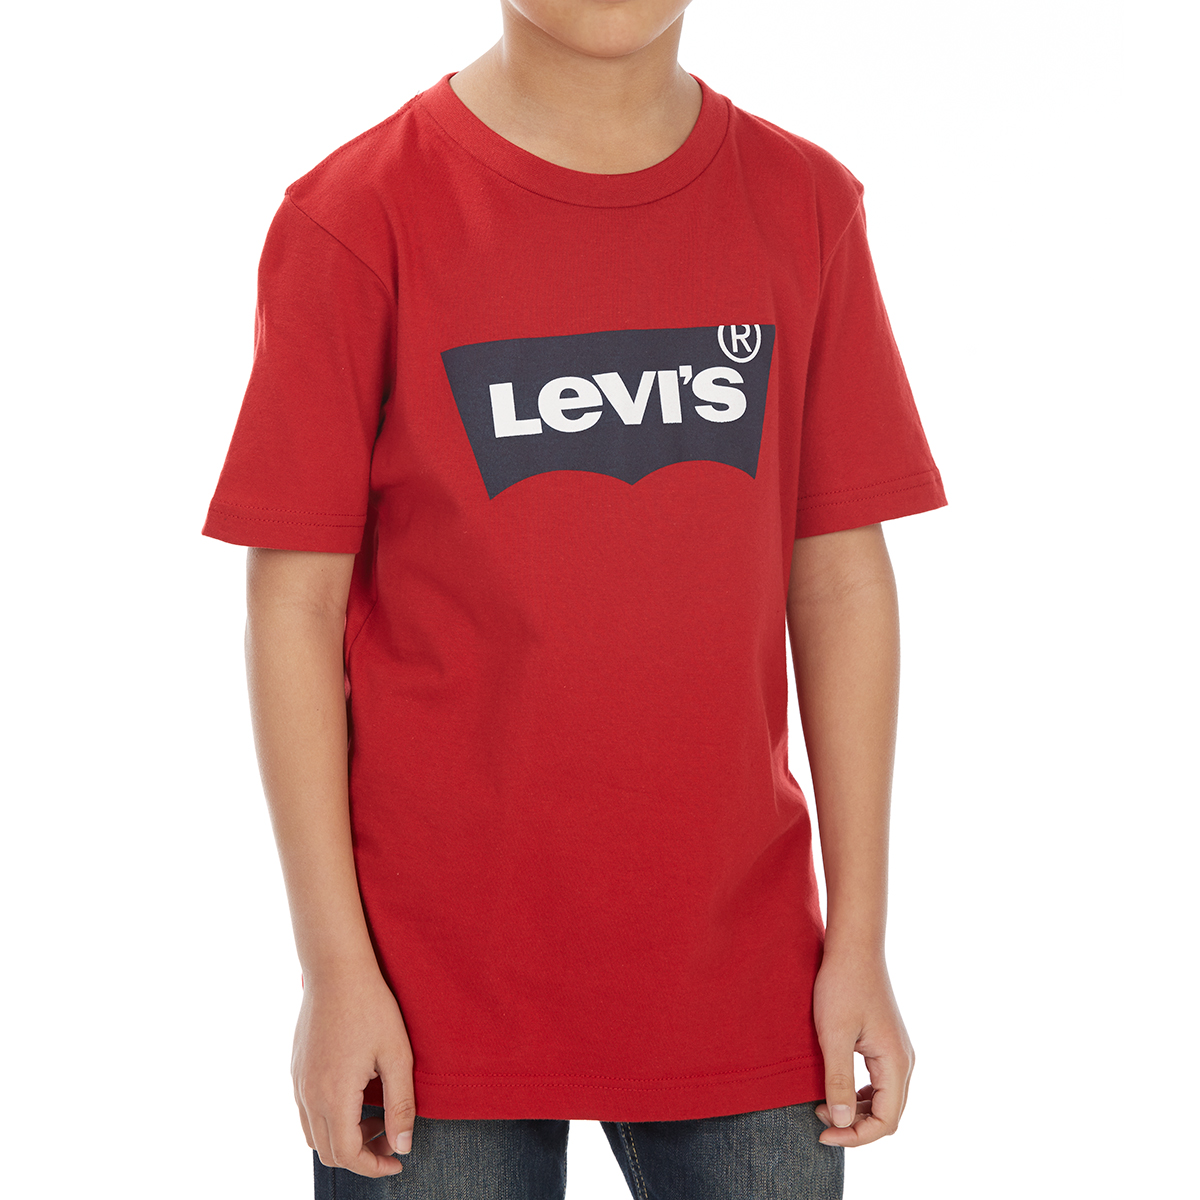 Levi's Toddler Boys' Batwing Short-Sleeve Tee - Red, 2T